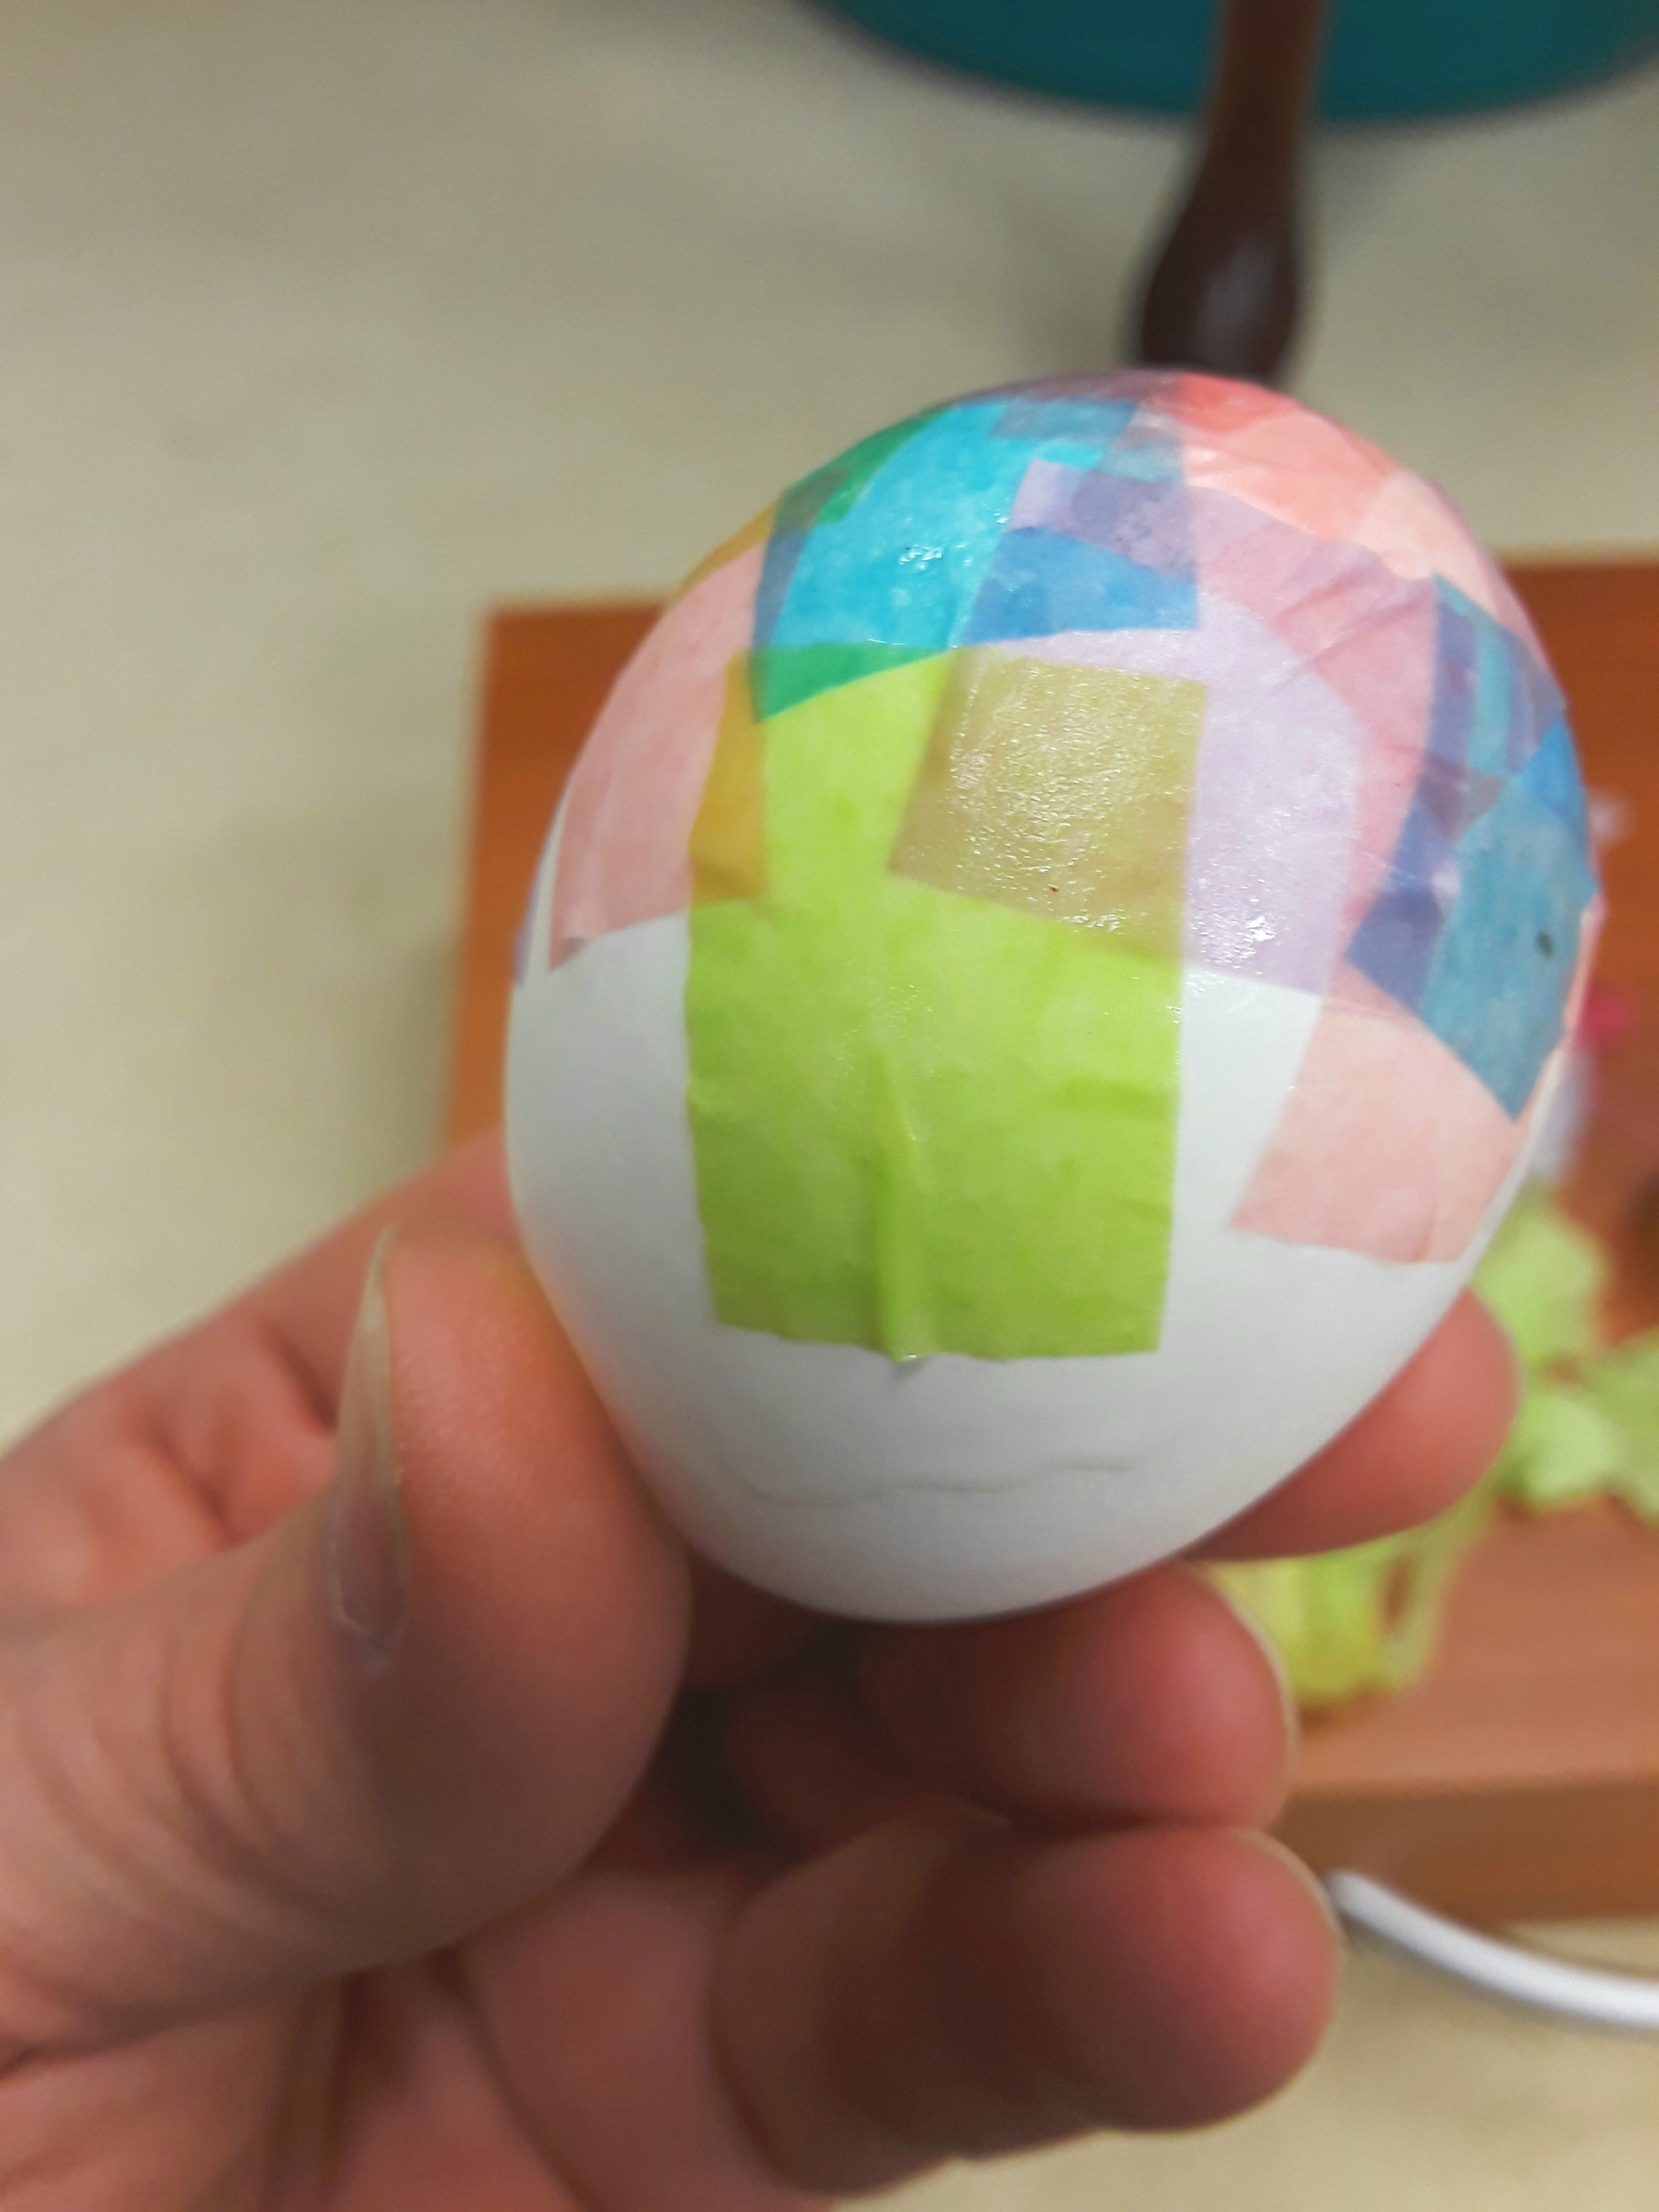 small squares of pink, green, and blue tissue are glued on to the egg